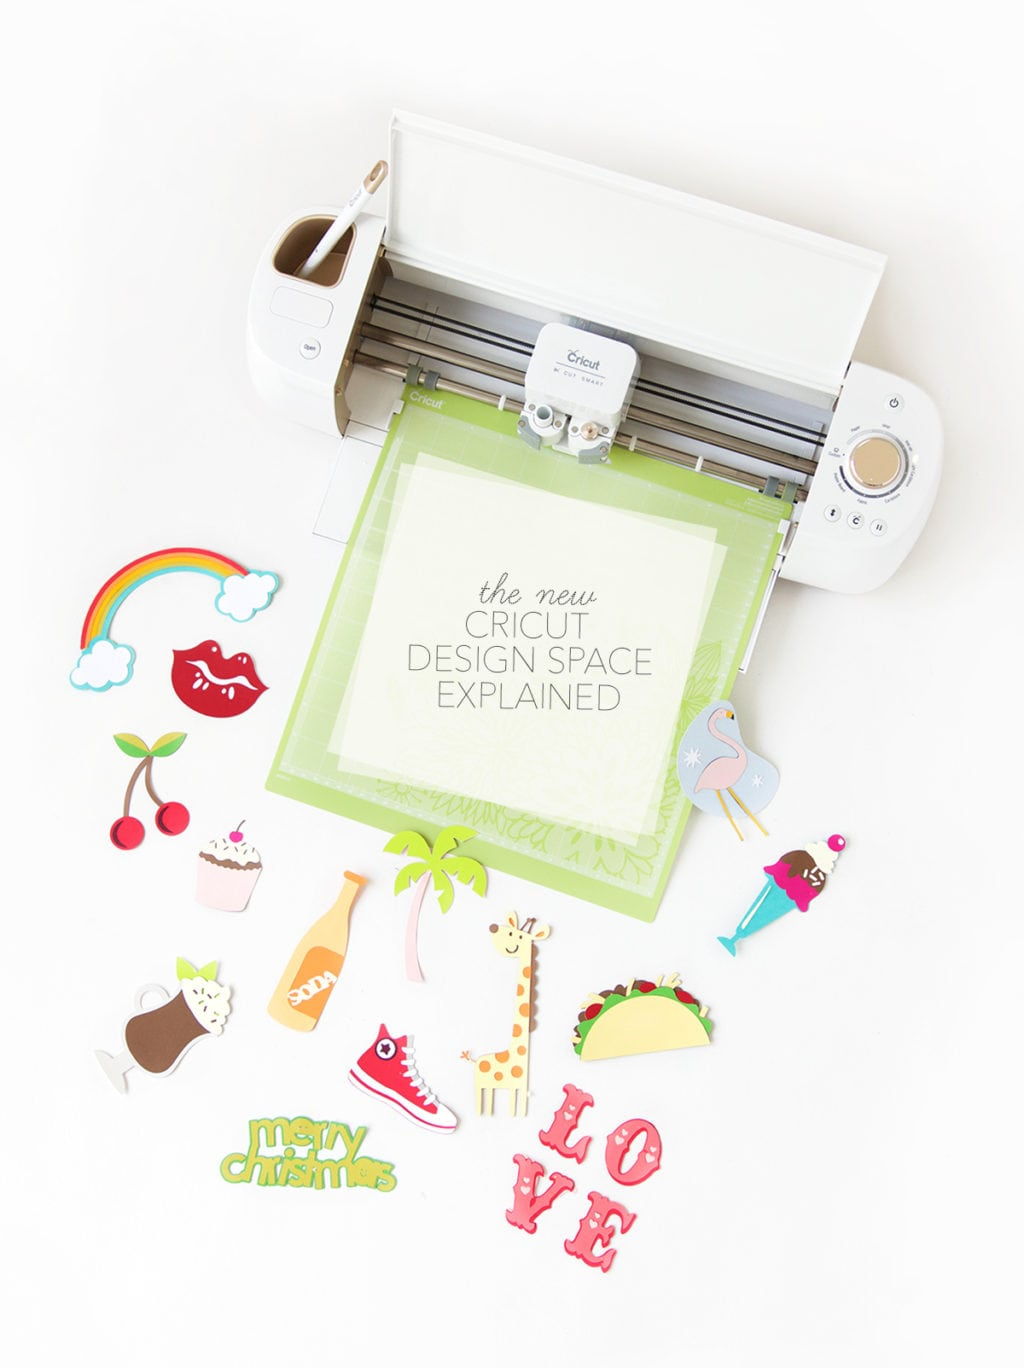 Cricut Design Space Subscription Explained Damask Love Got My Circuit Personal Electronic Cutter Machine A Year Ago For Header